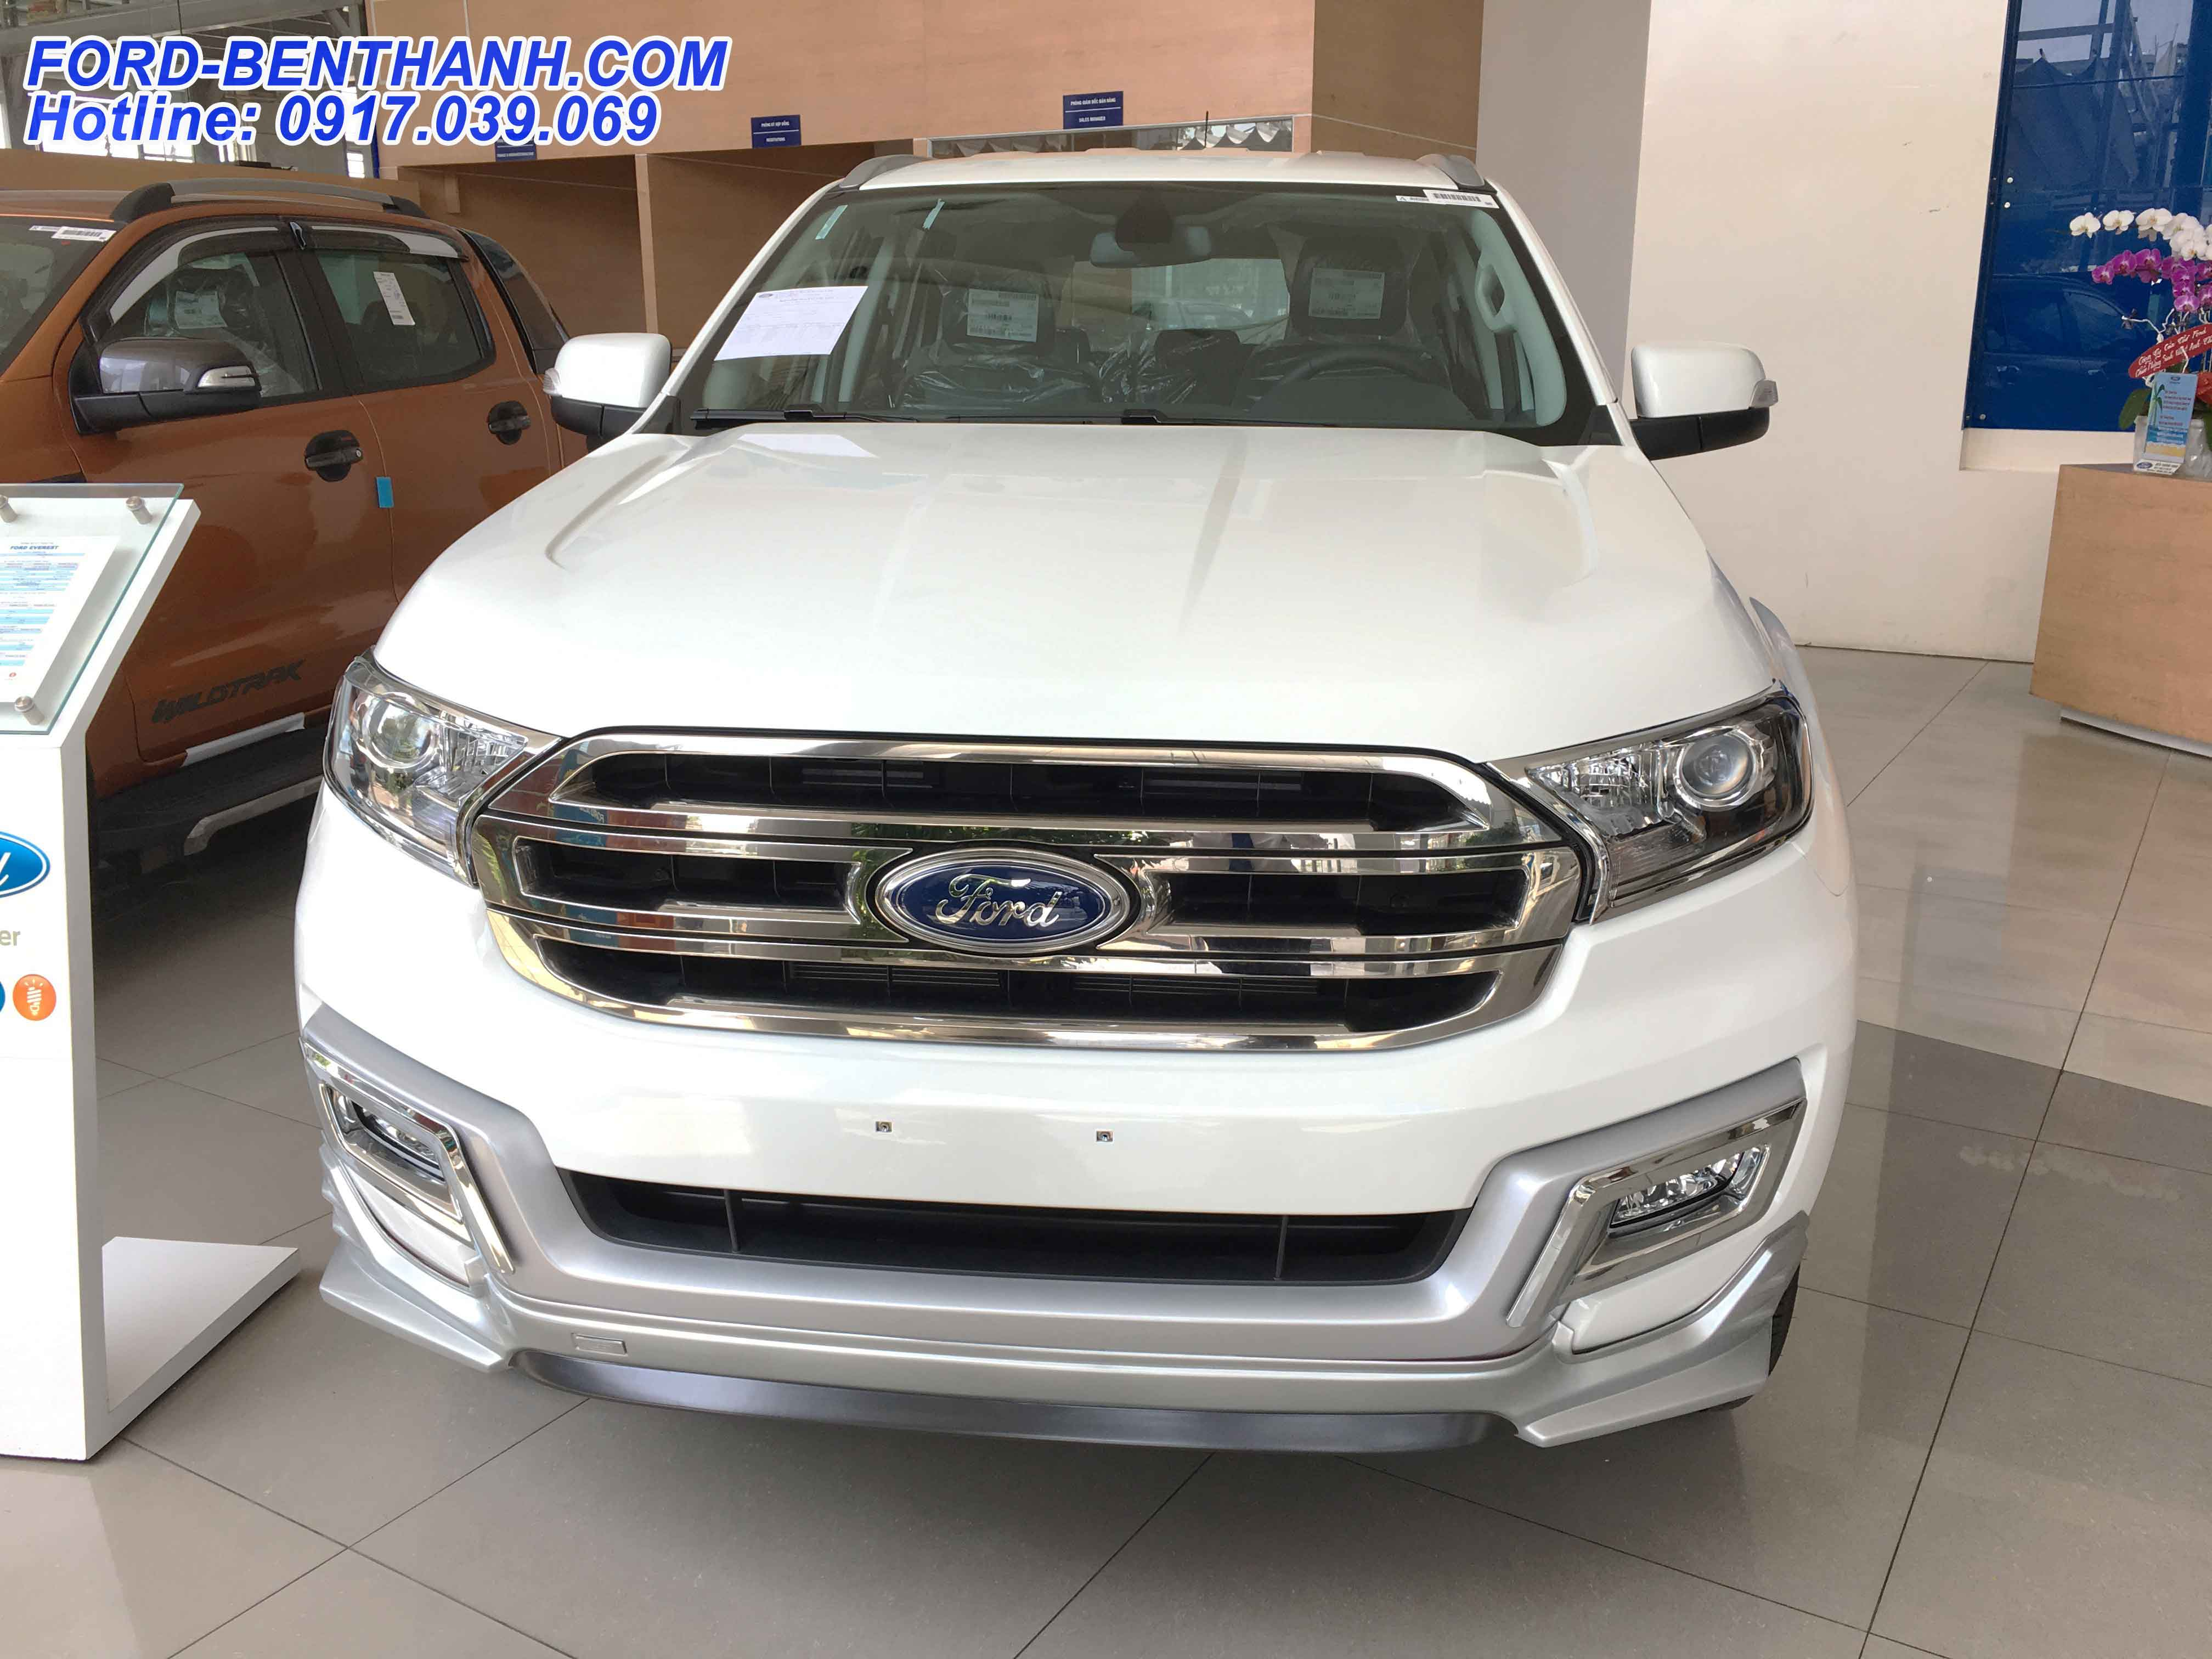 xe-ford-everest-2017-ben-thanh-ford-01